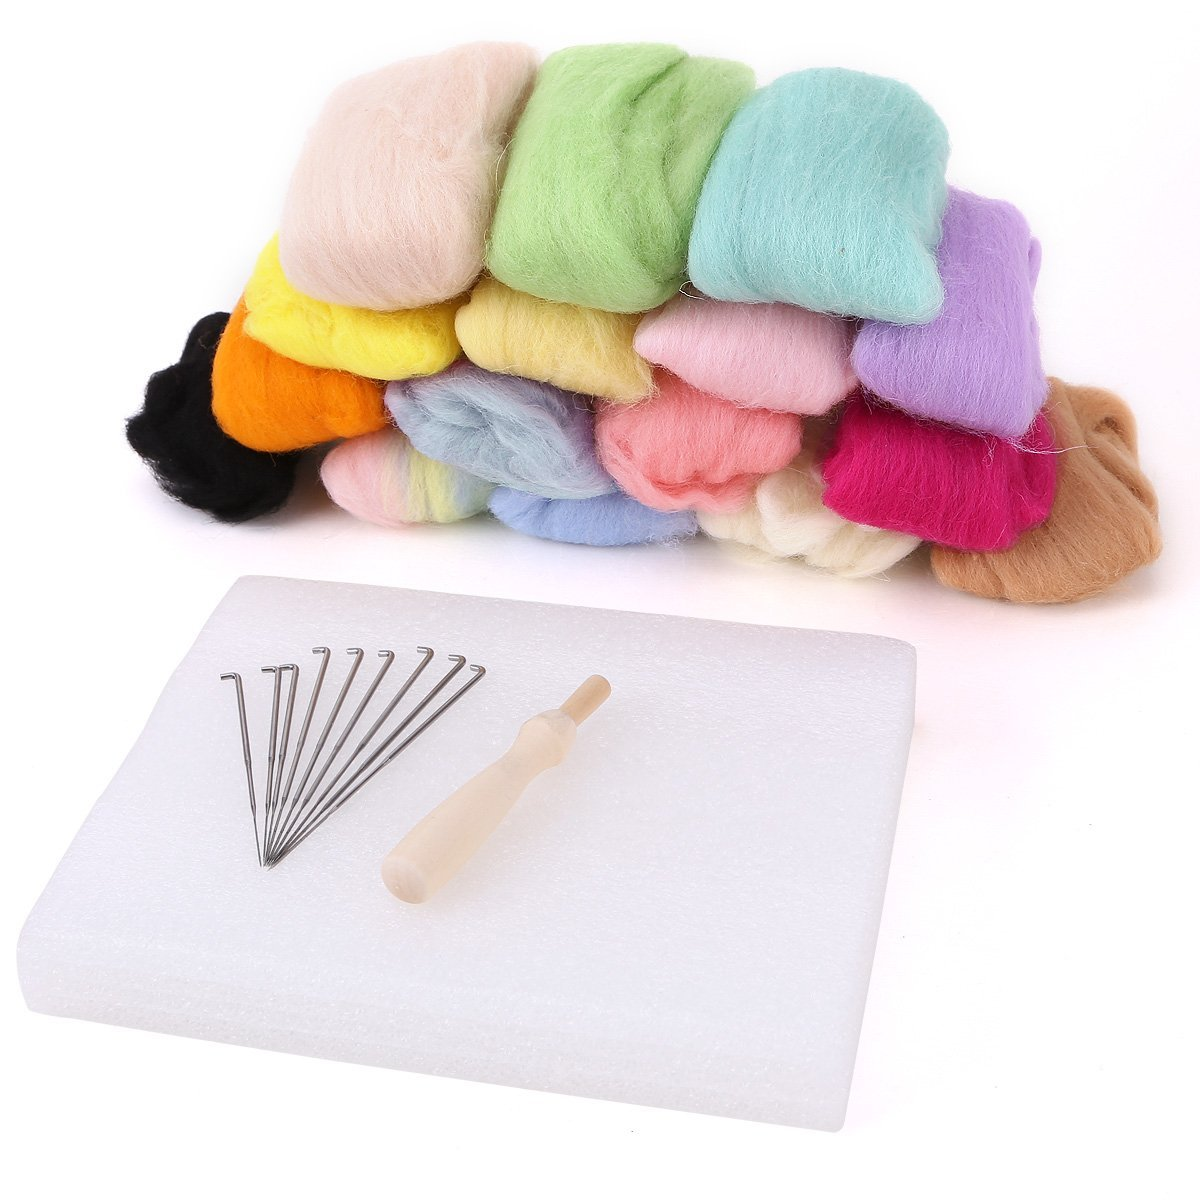 160G 16 Colors Pure Wool Felt Craft Tops Felting Set Needle Kit Starter Felted Mat surepromise